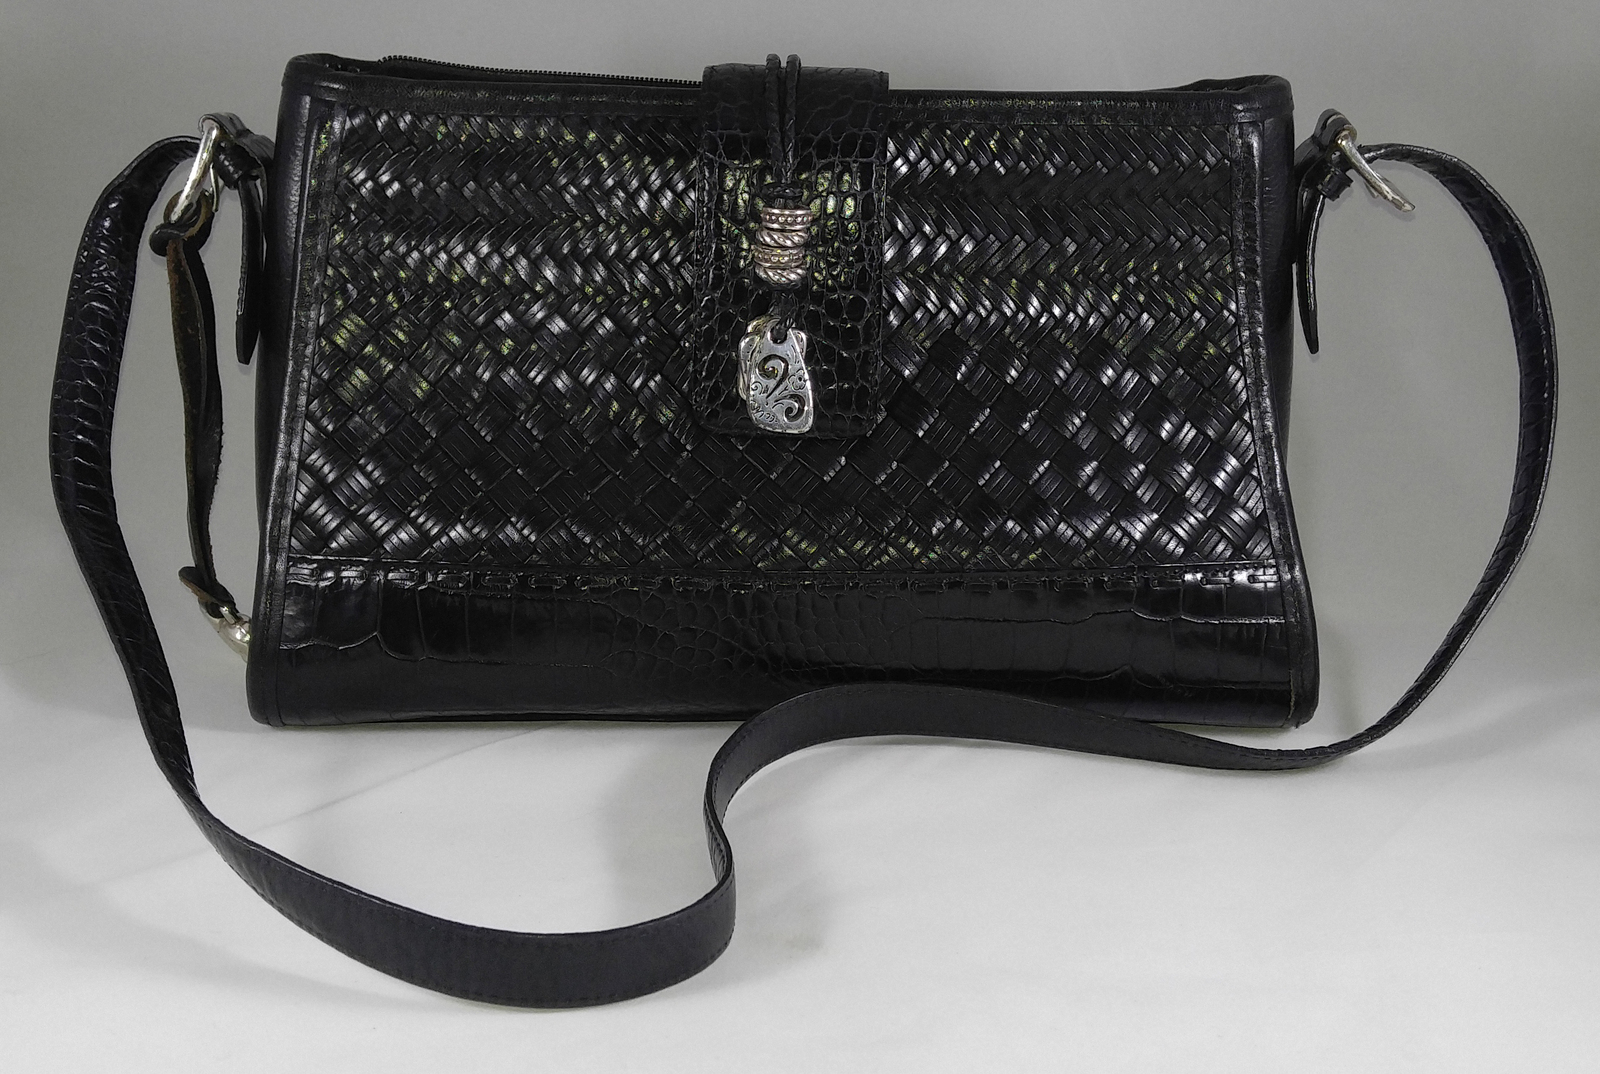 896a5359e27d Brighton Black Leather Weave Heart Charms Flap Cross Body Handbag Purse -  $79.99